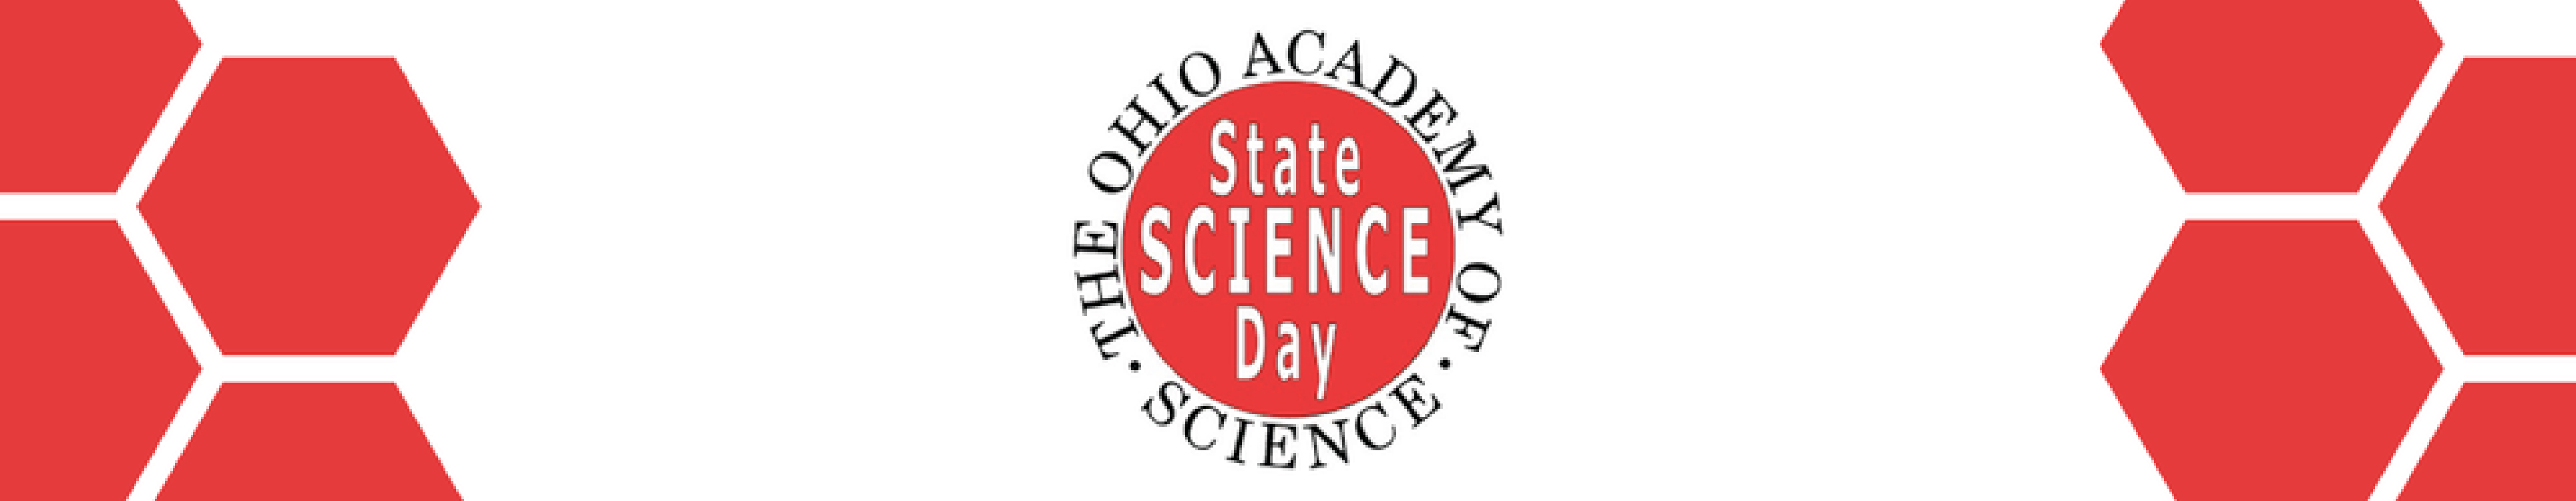 State Science Day